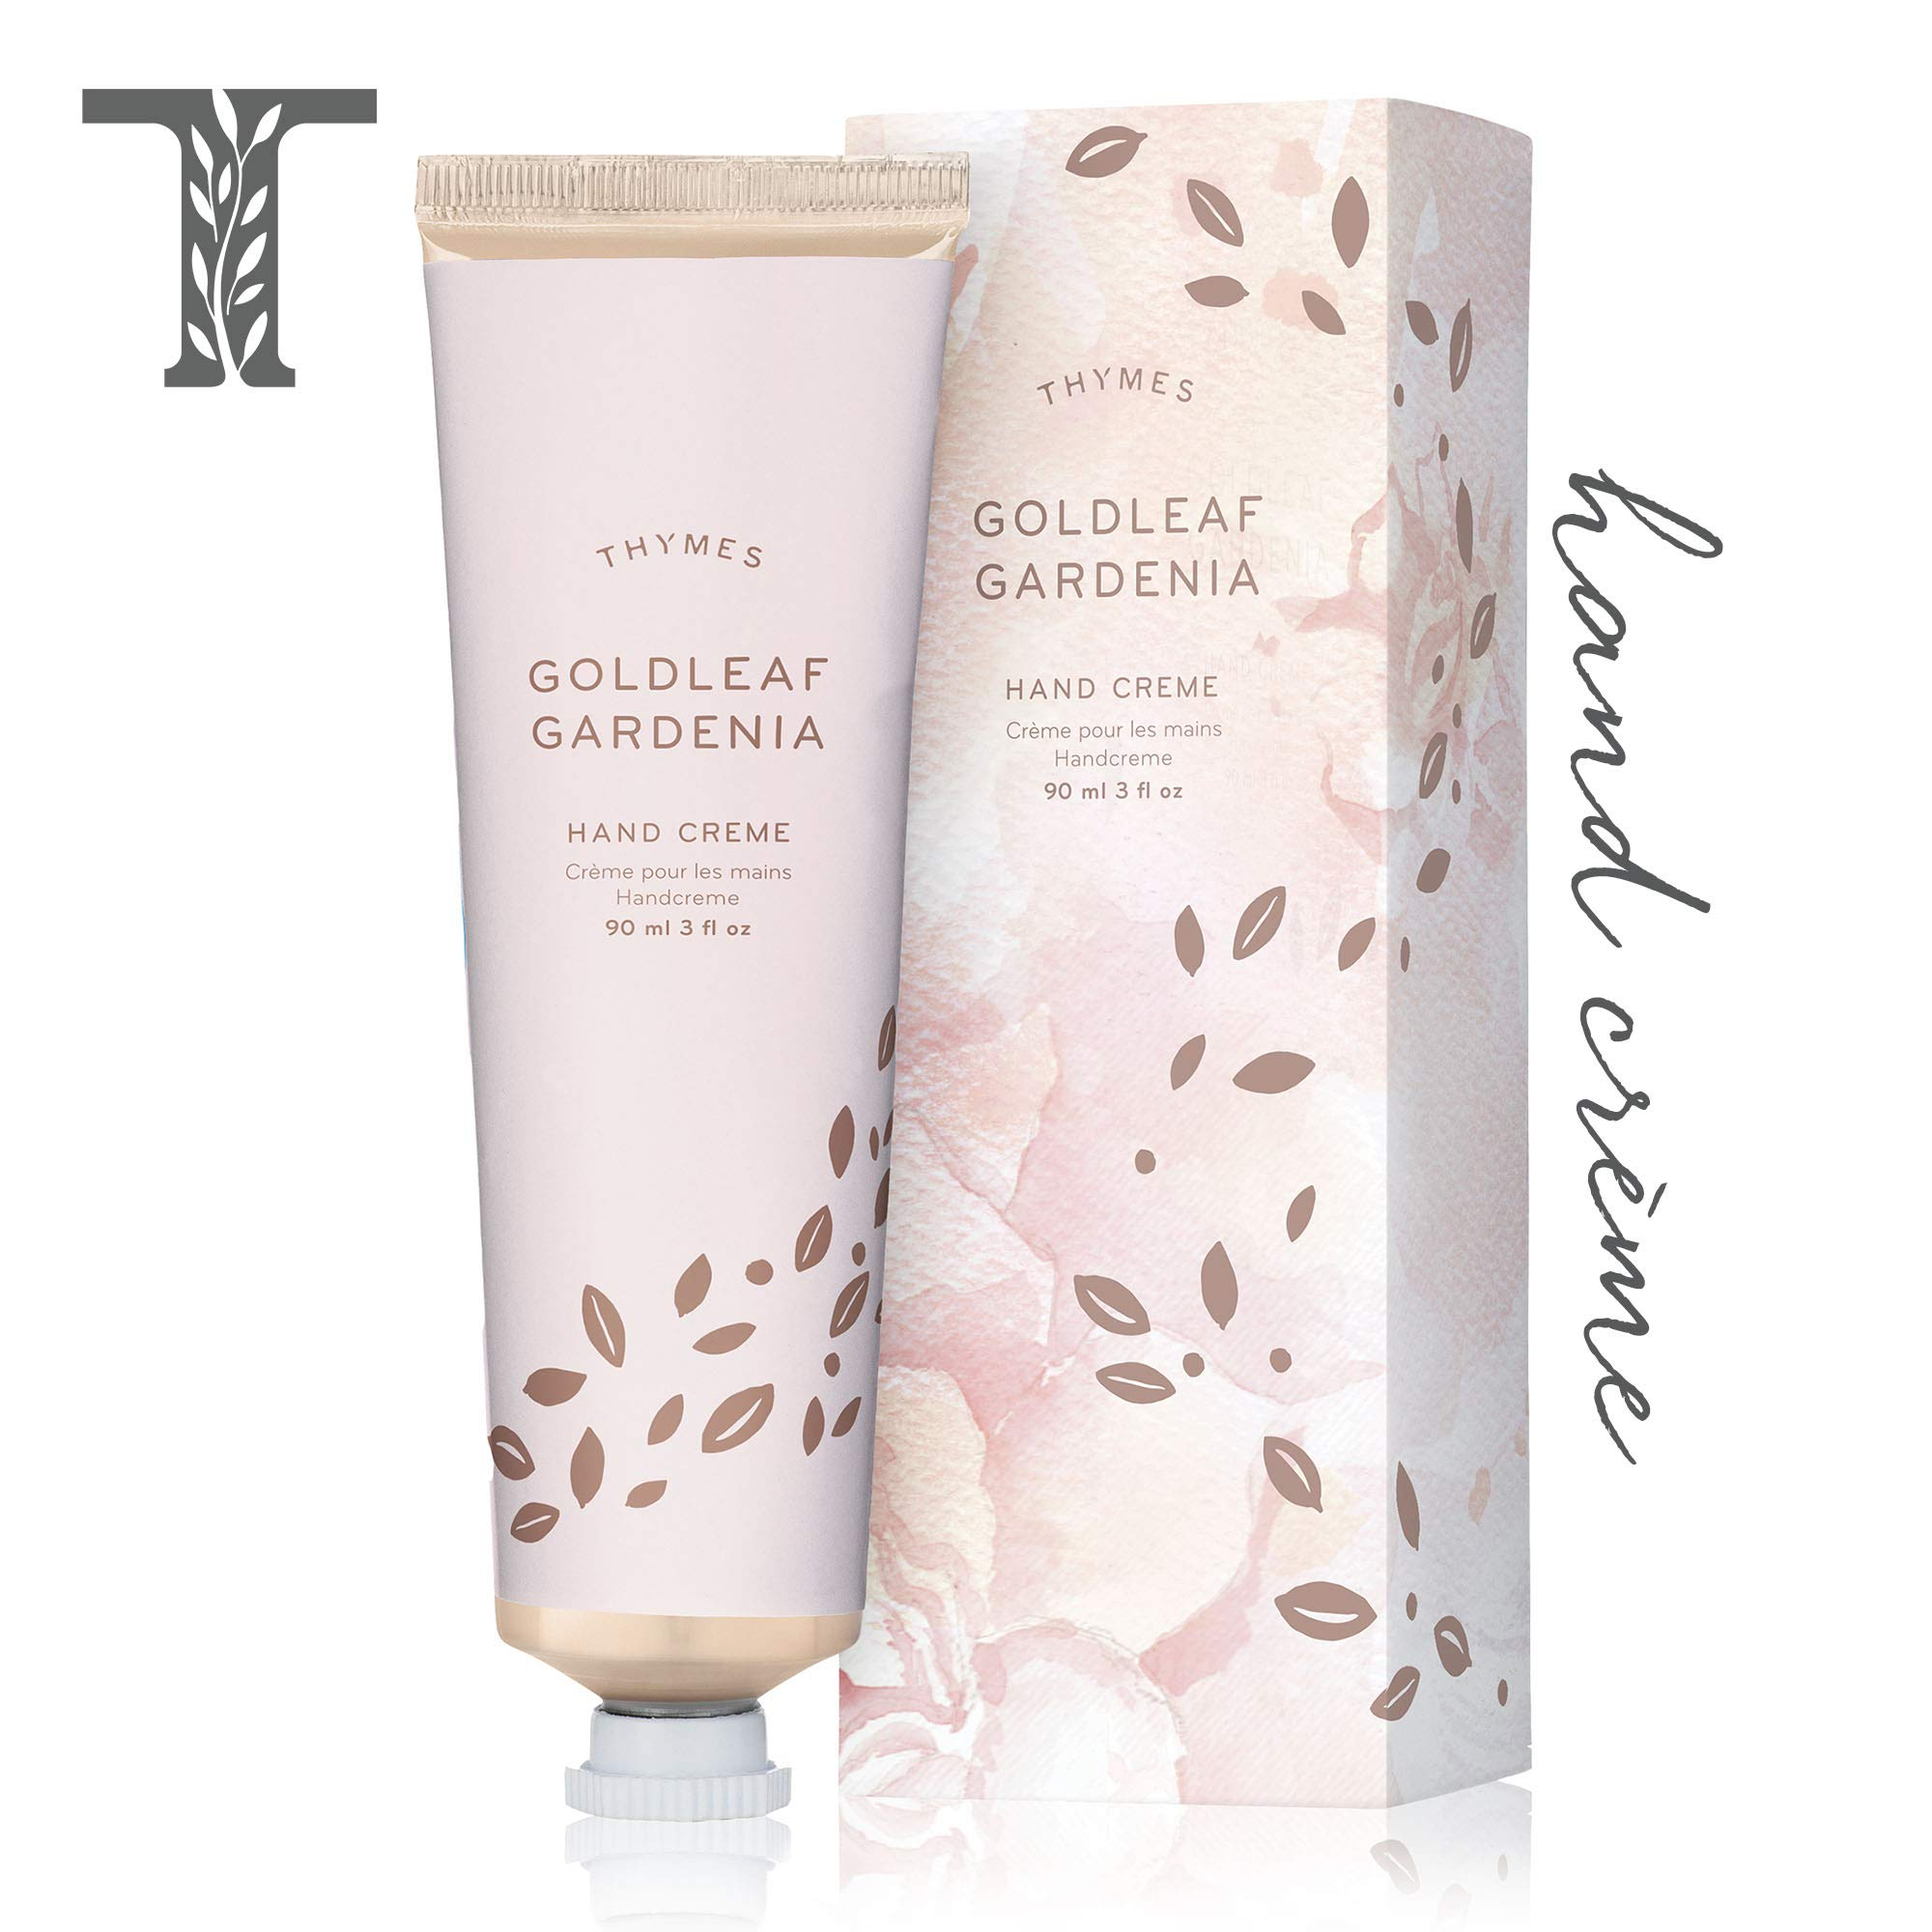 Thymes Goldleaf Gardenia Hand Crème - Deeply Moisturizing Cream with Light Floral Scent for Women - 3 oz